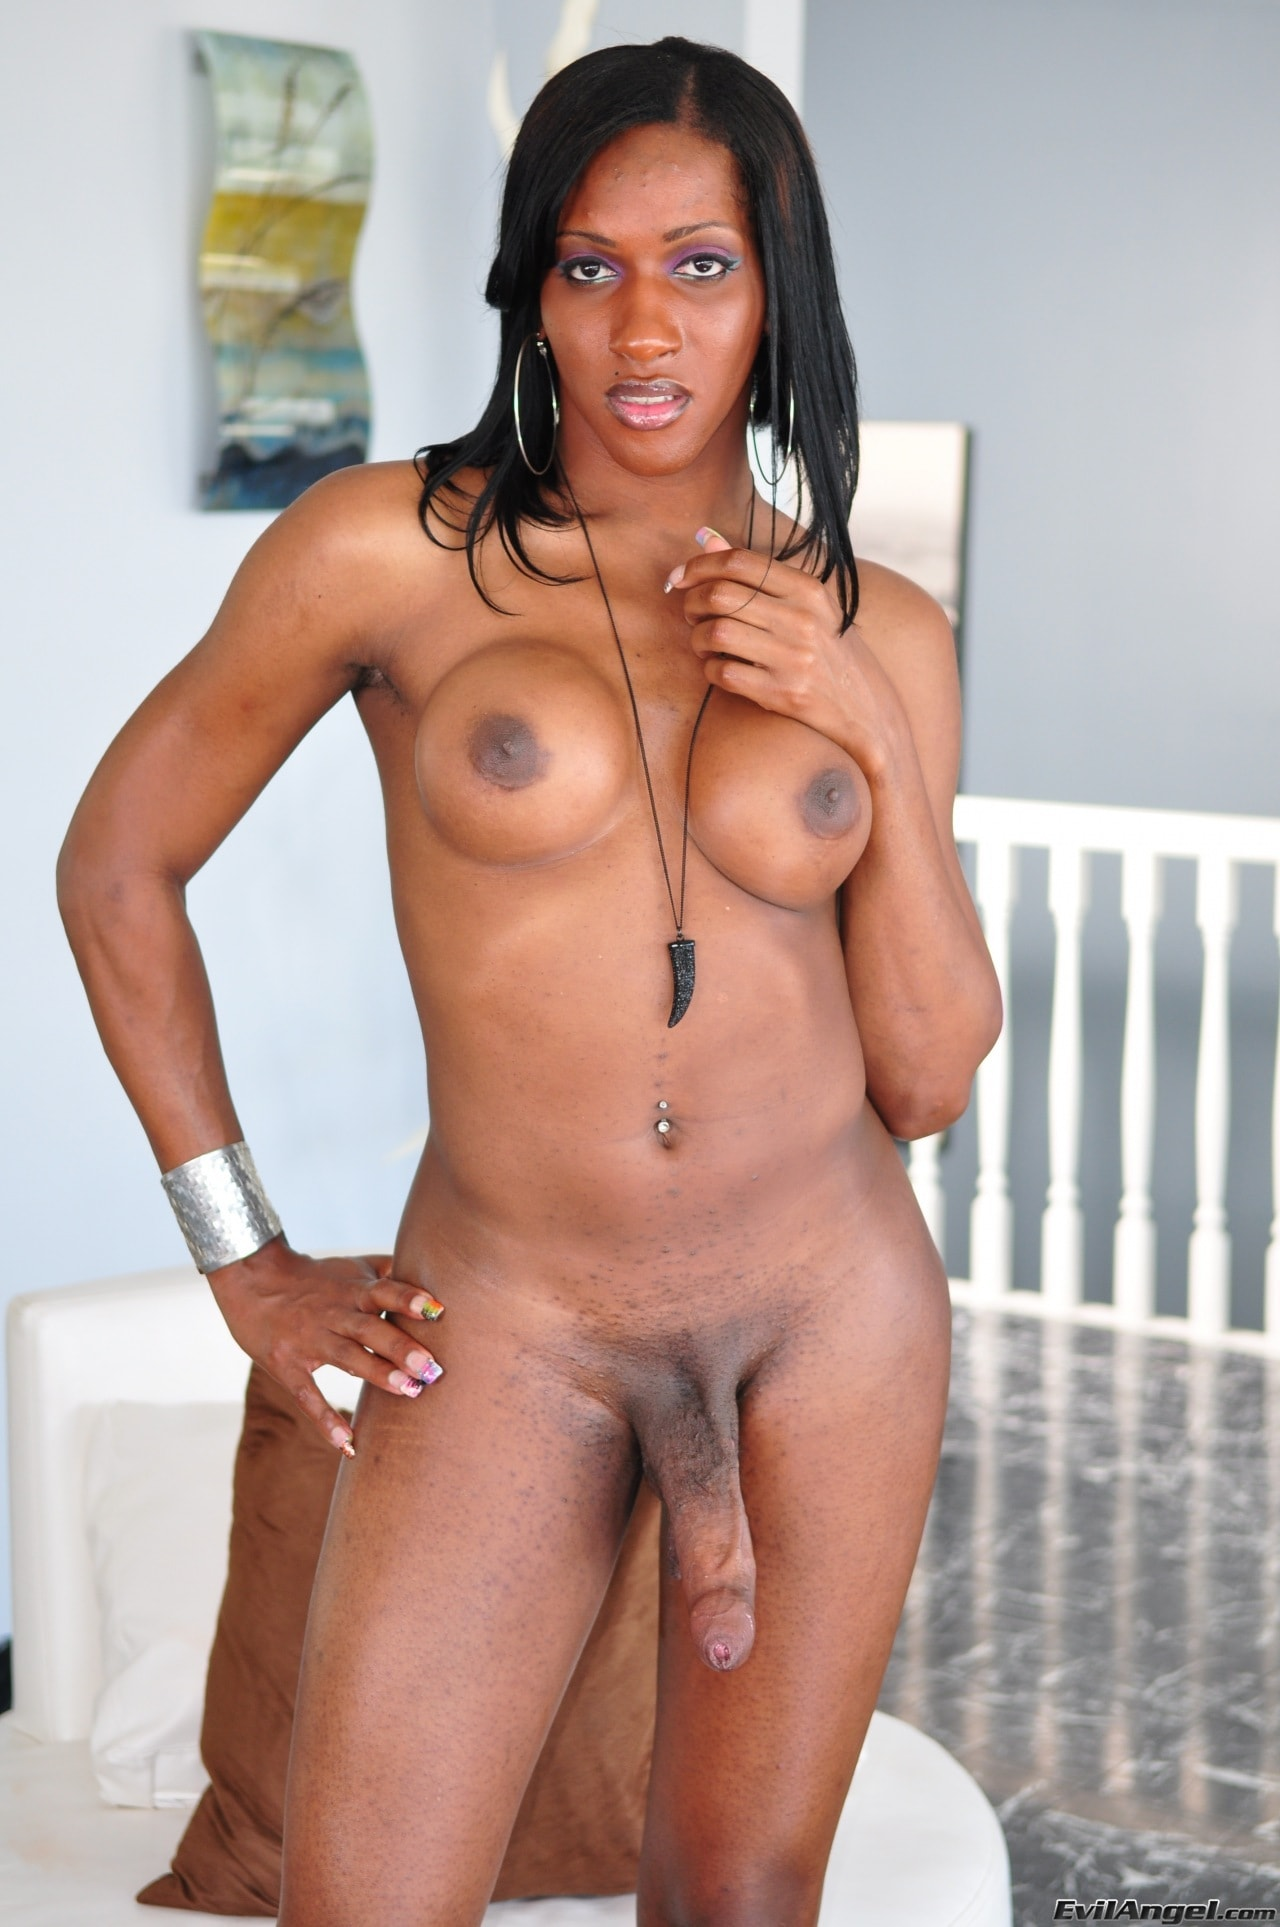 I Love Black Shemales 'Black Shemale Idol - The Auditions 02' starring Ts India (Photo 65)